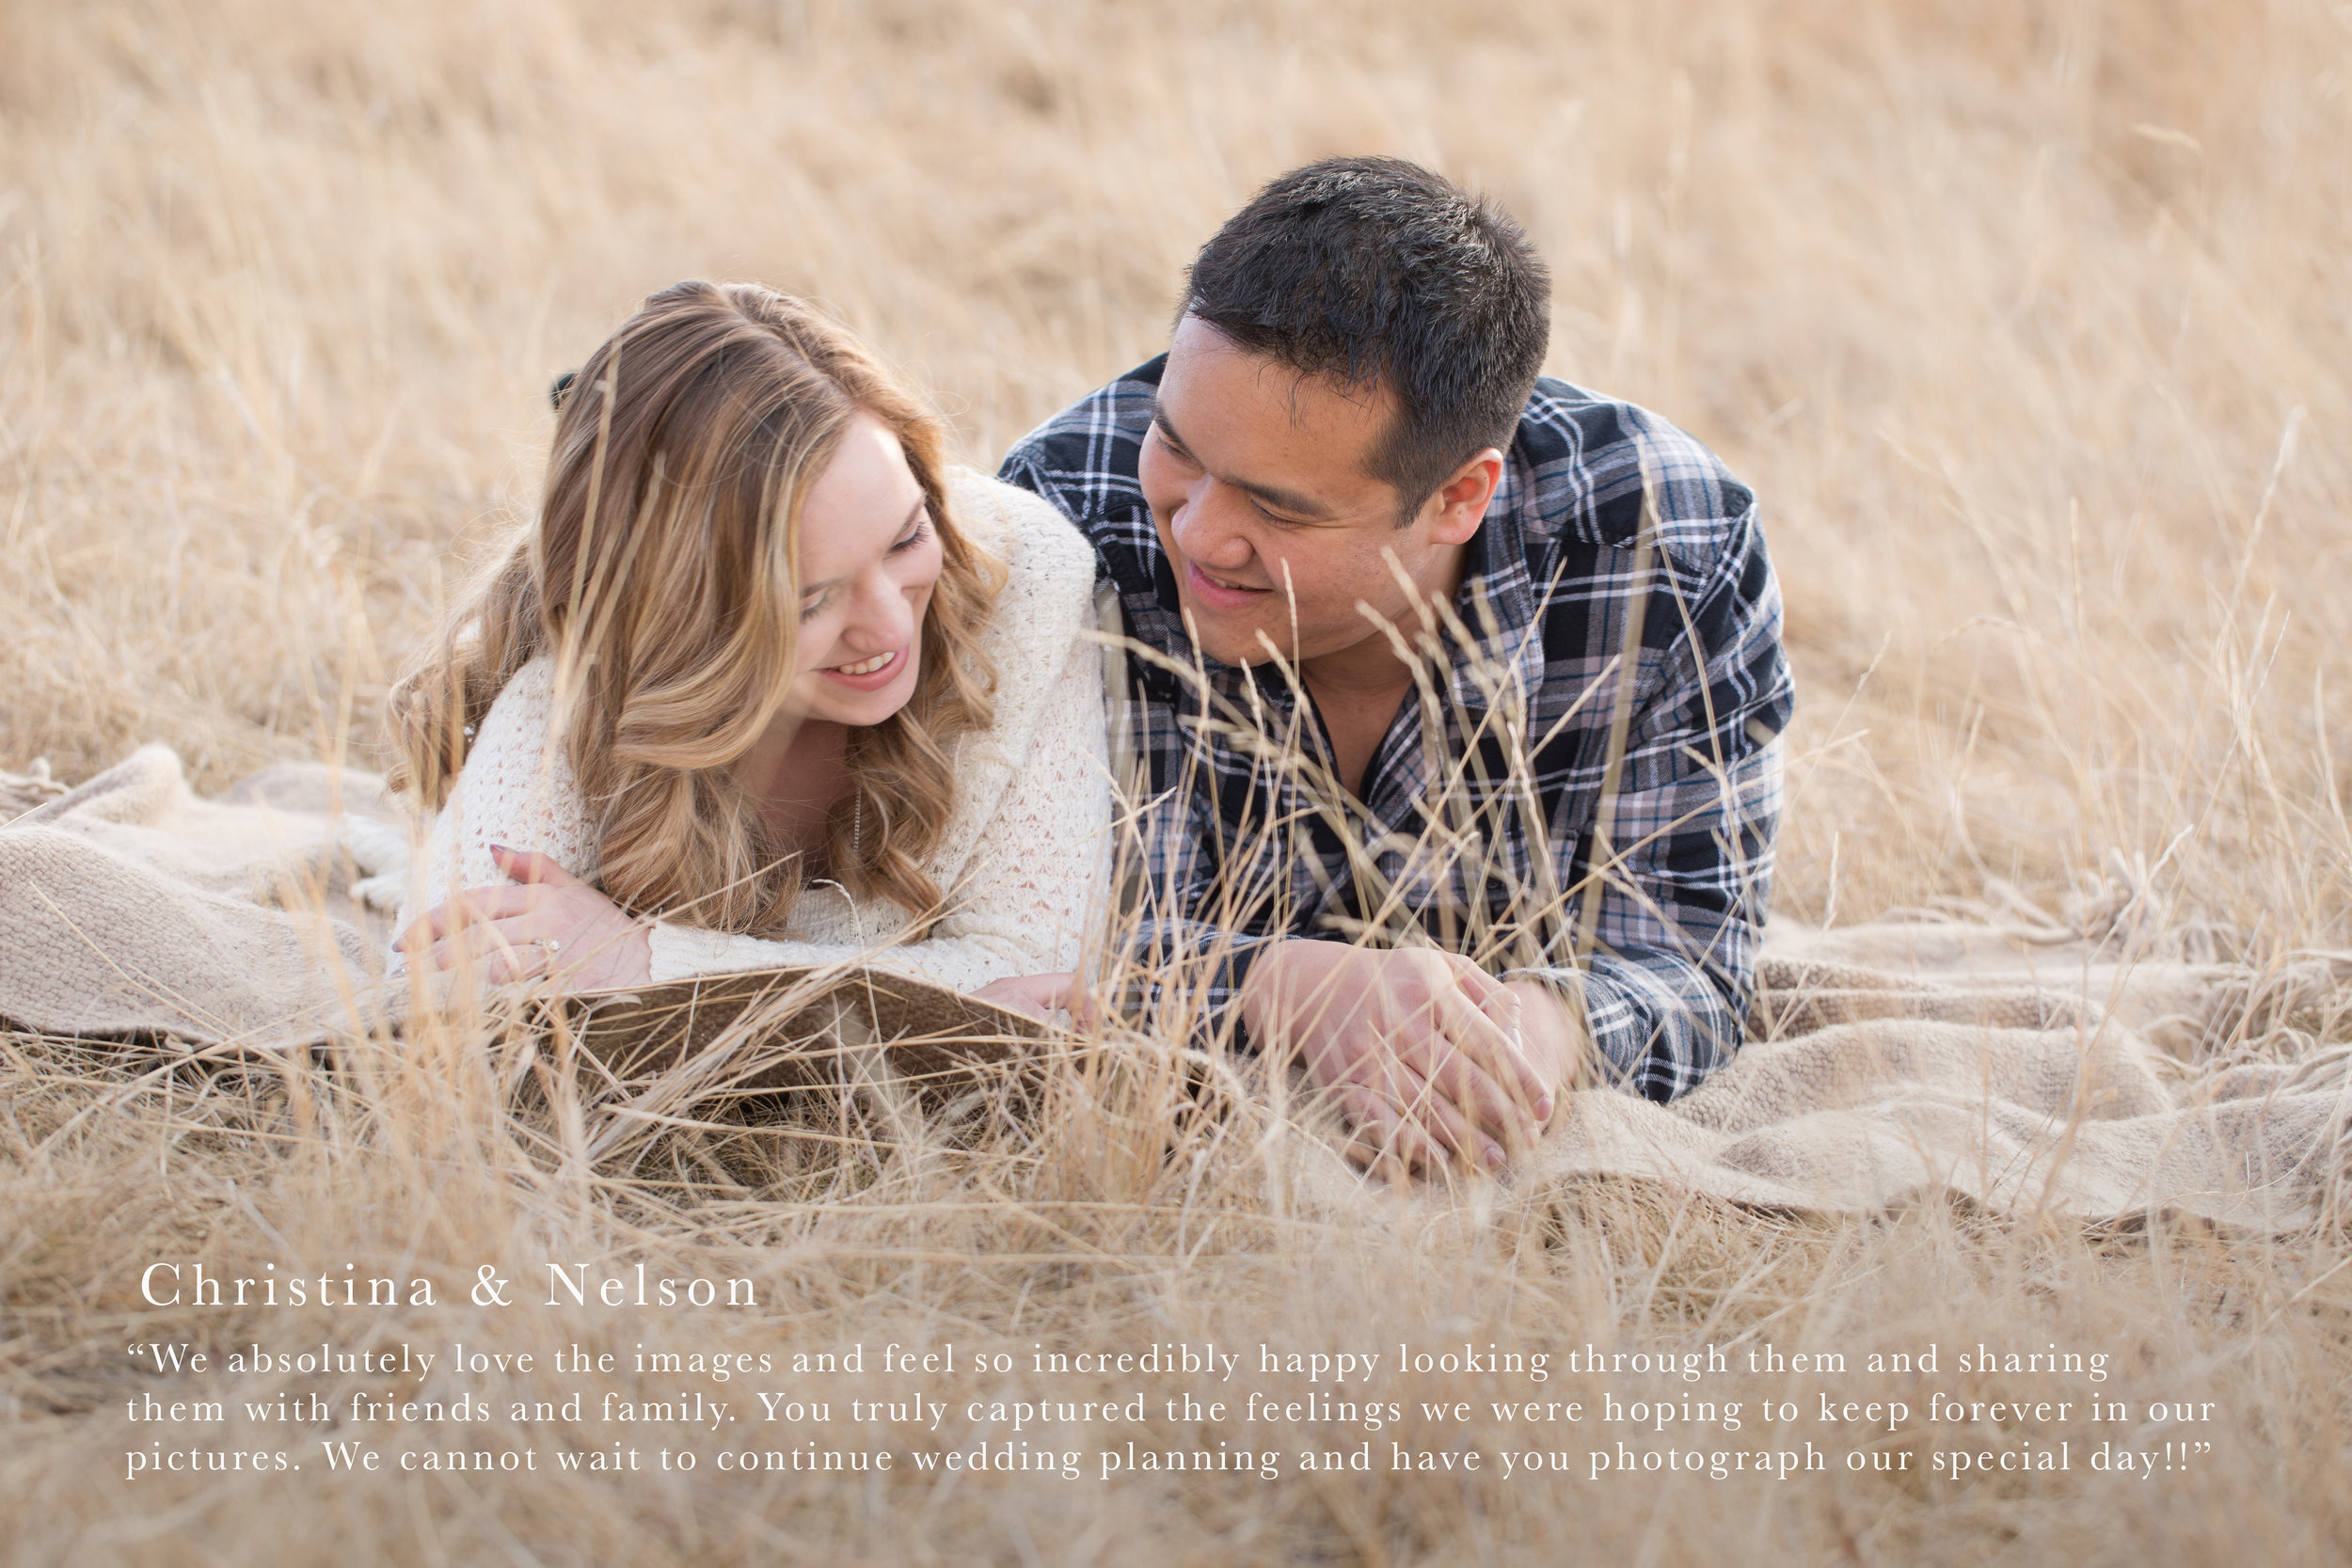 Engagement Photography Review - Christina & Nelson